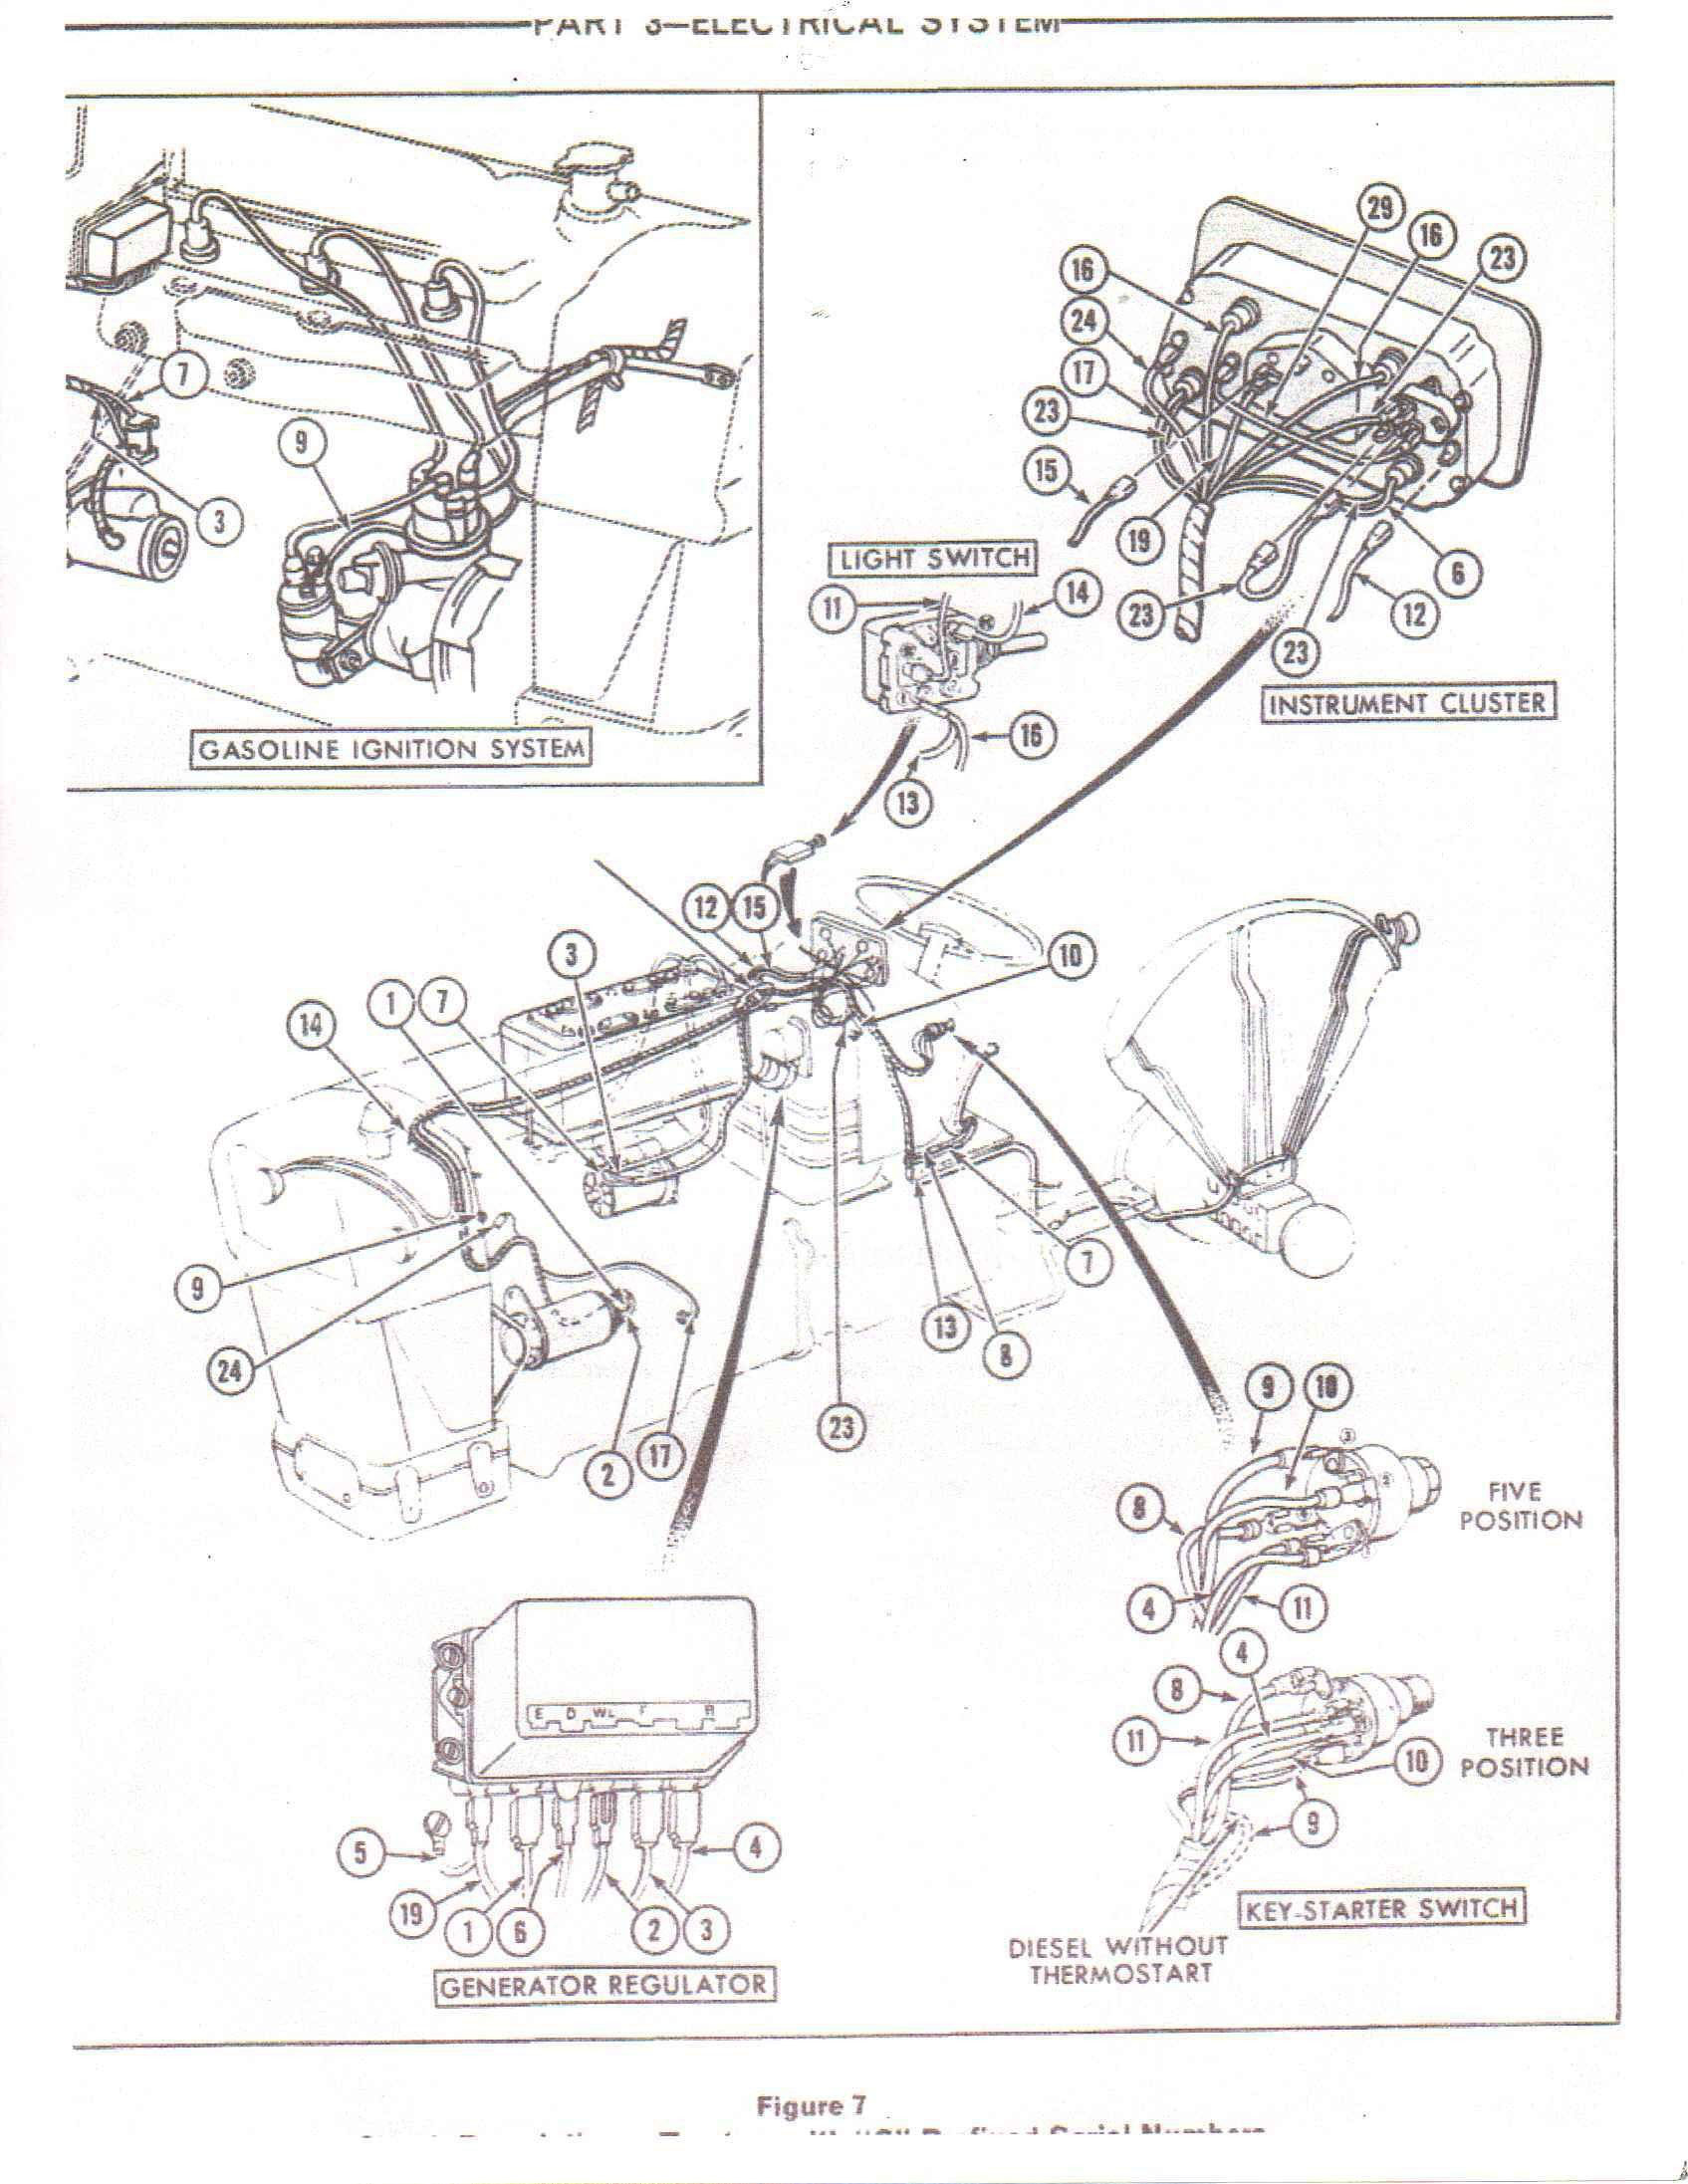 Fordson Tractors Service Repair Manuals - Wiring Diagrams